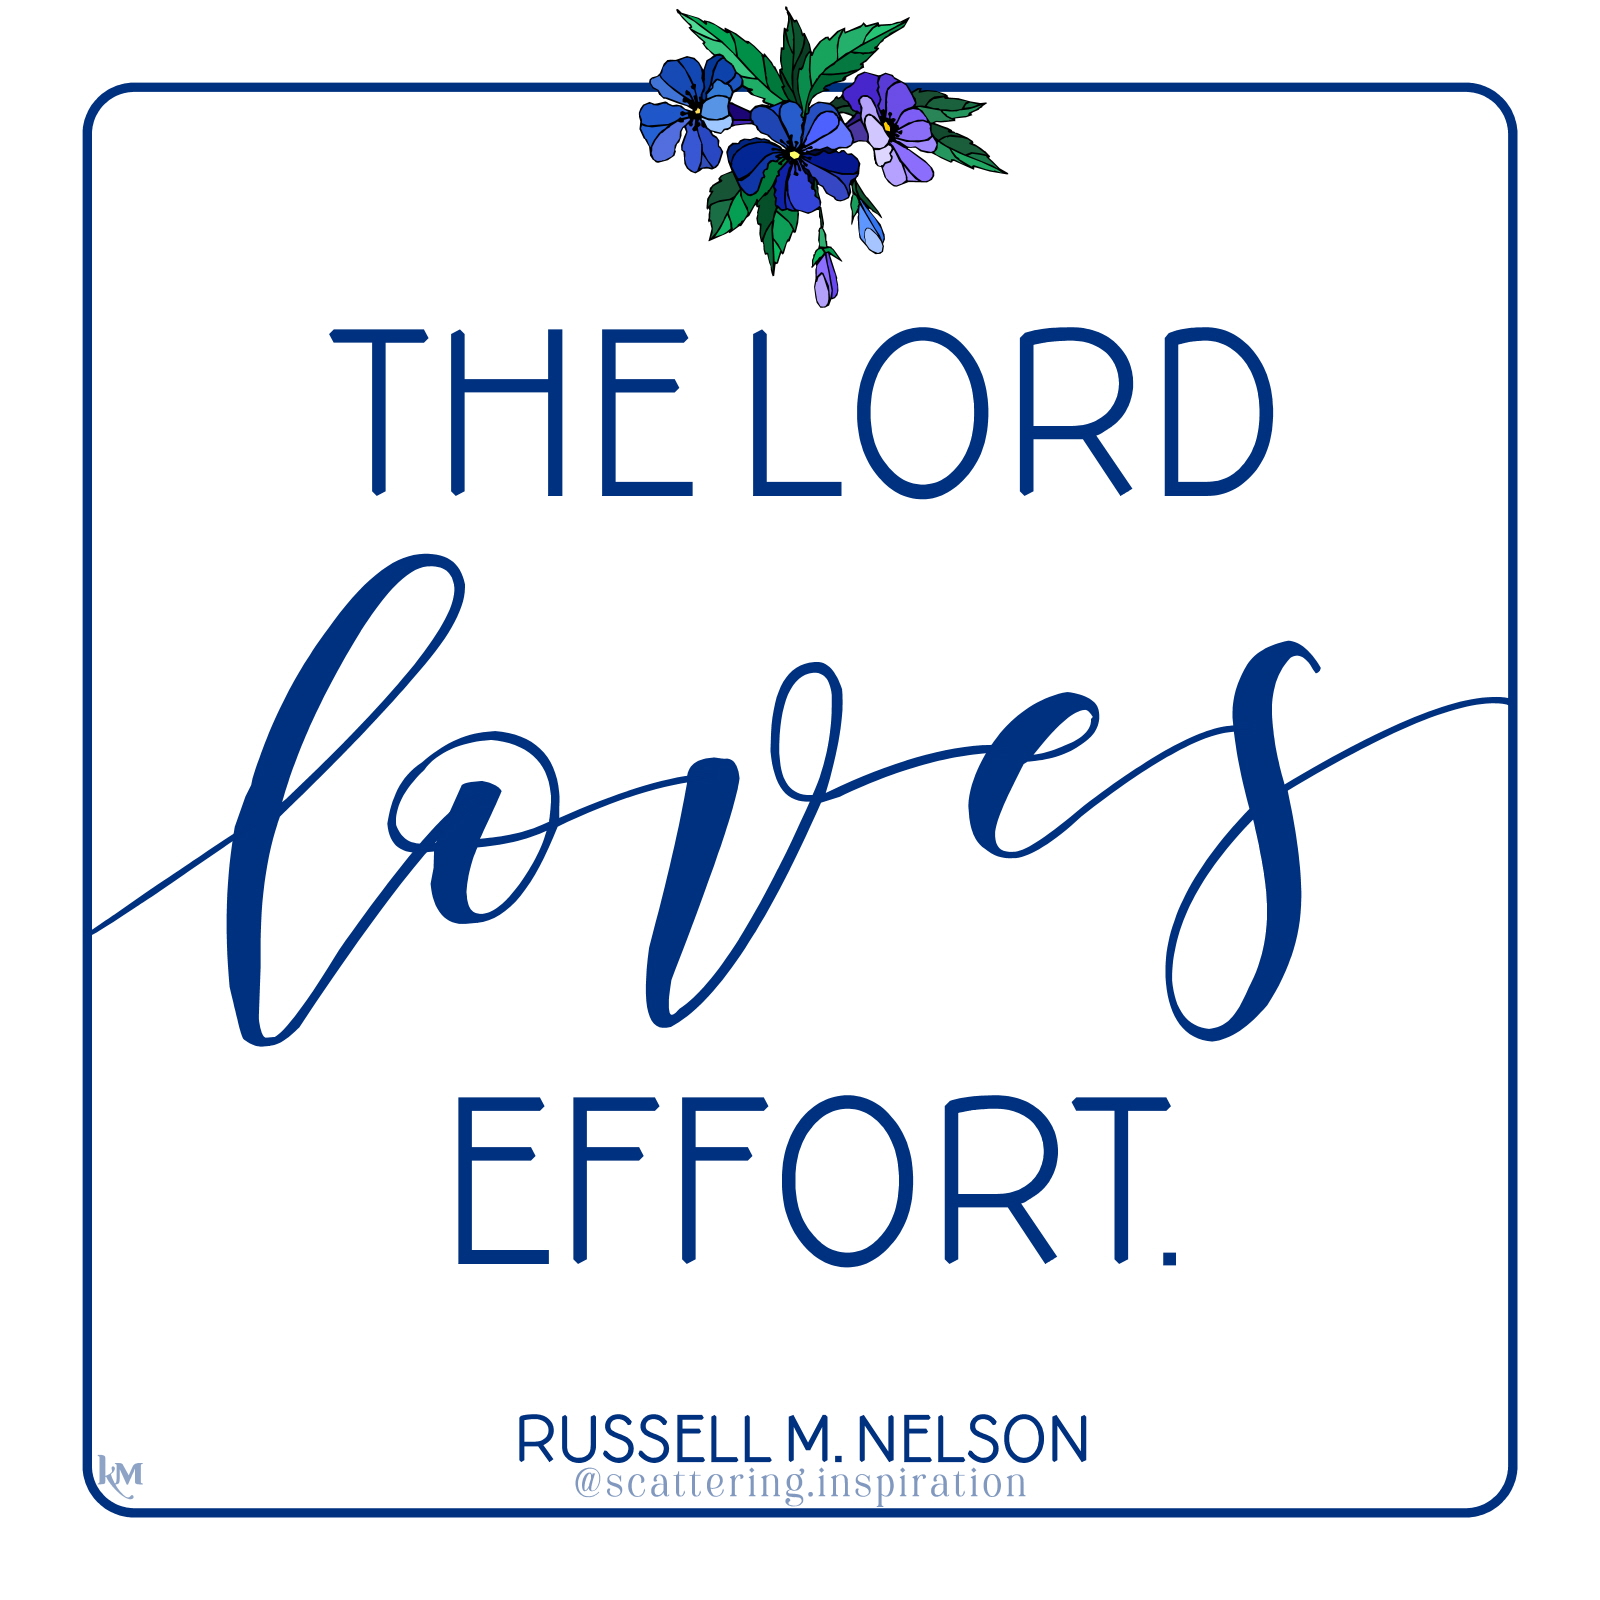 the Lord loves effort